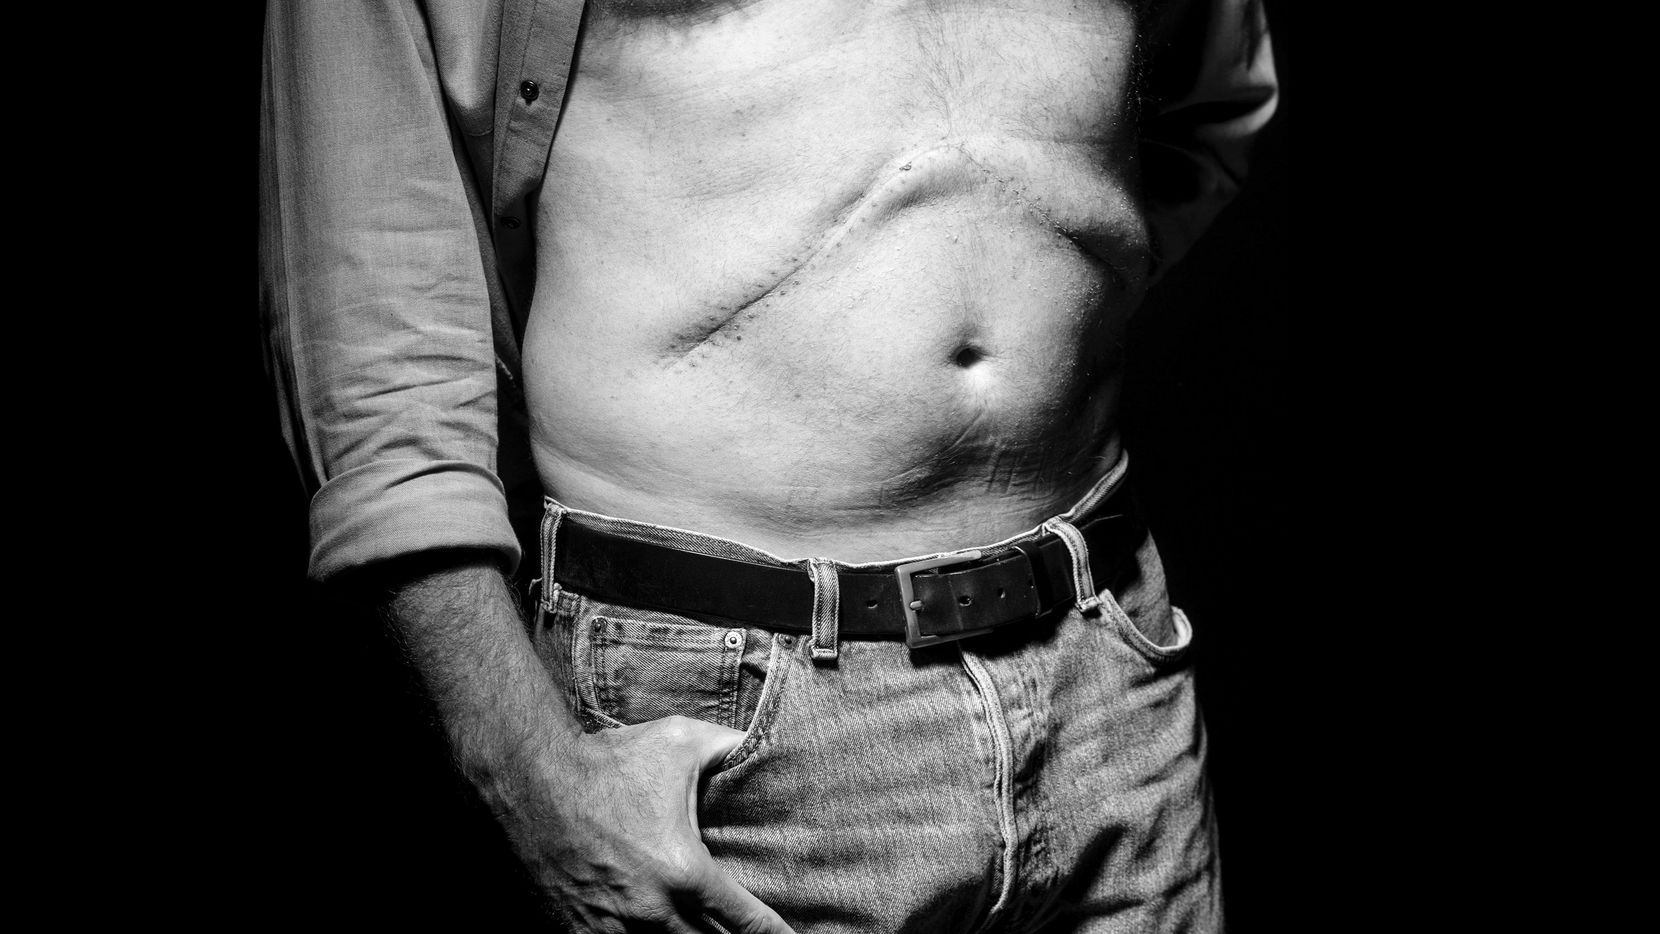 Robert Wilonsky, city columnist at The Dallas Morning News, posed for a photograph showing his surgical scars at the DMN on July 31.